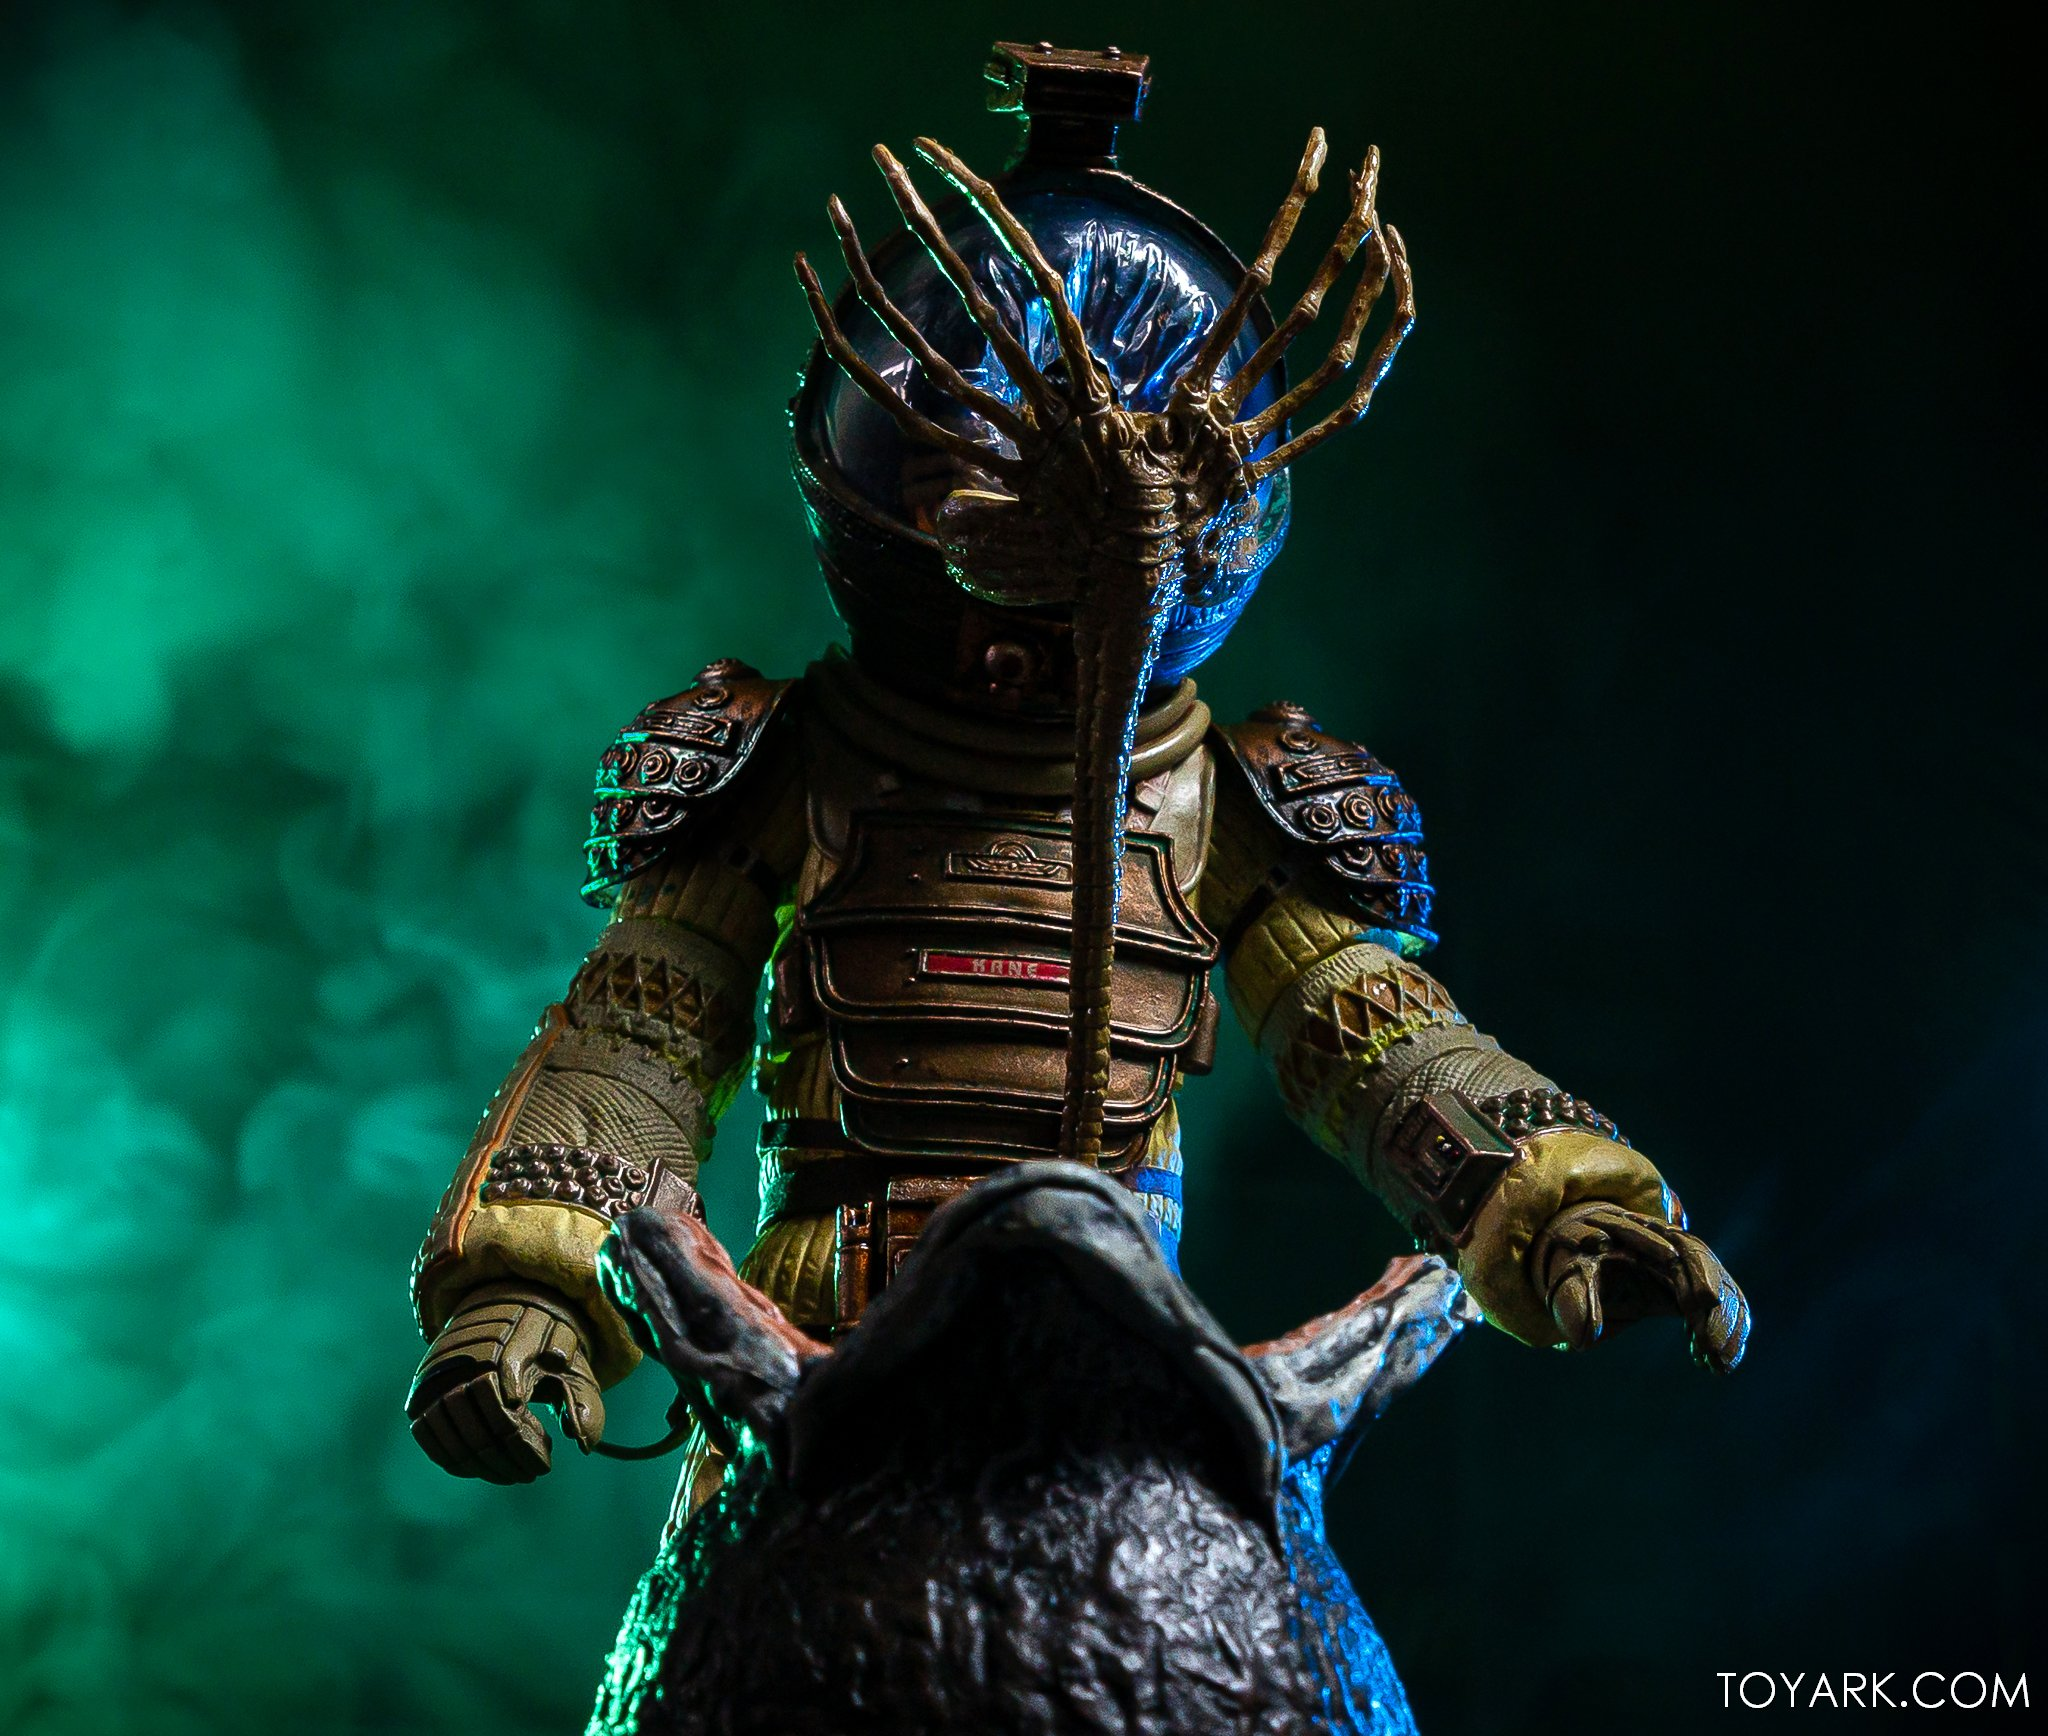 https://news.toyark.com/wp-content/uploads/sites/4/2020/01/NECA-Big-Chap-Alien-Ultimate-040.jpg